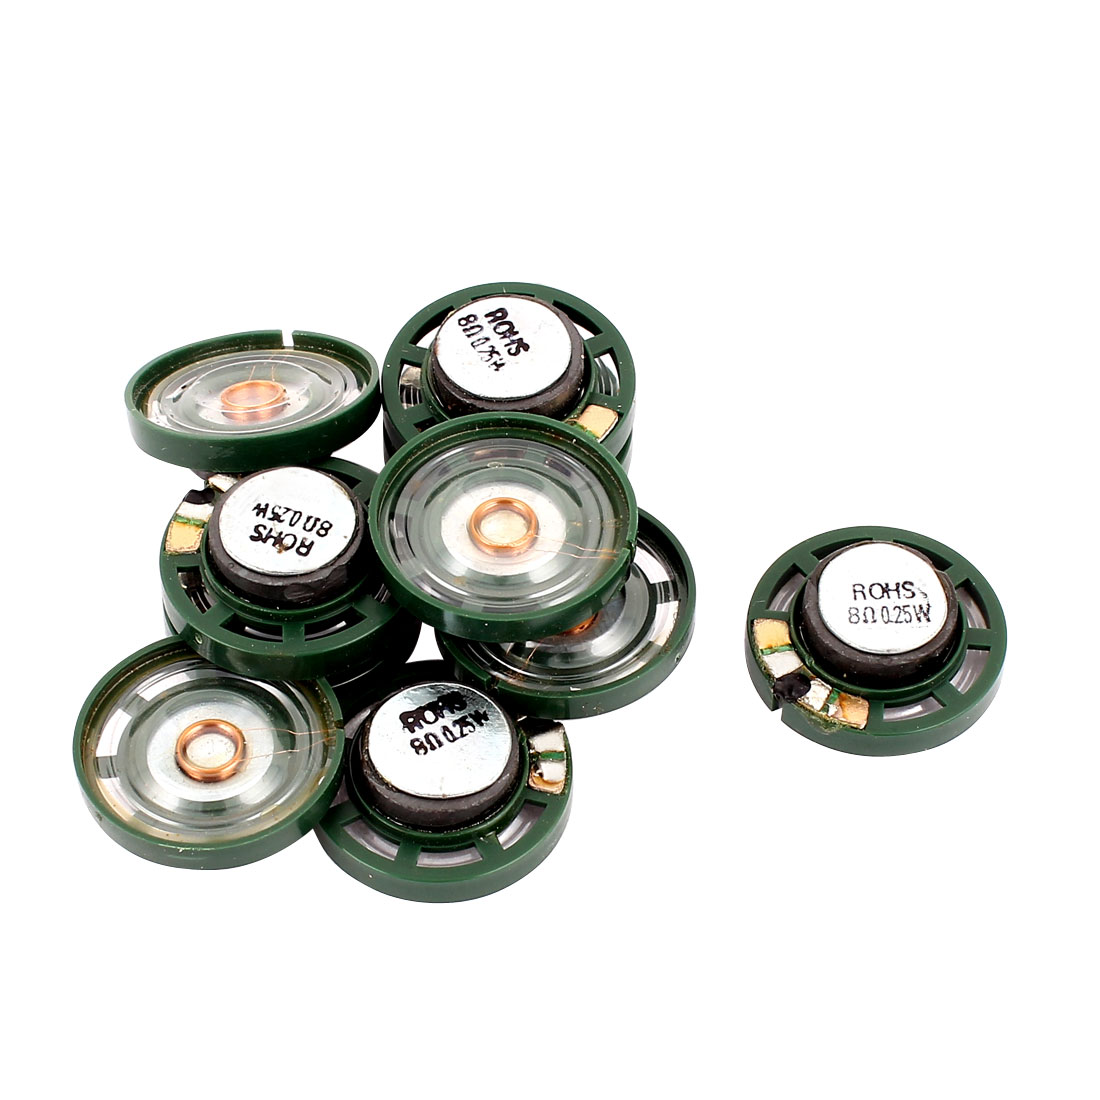 0.25W 27mm Diameter 8 Ohm Internal Mini Magnet Speaker Loudspeaker 10Pcs